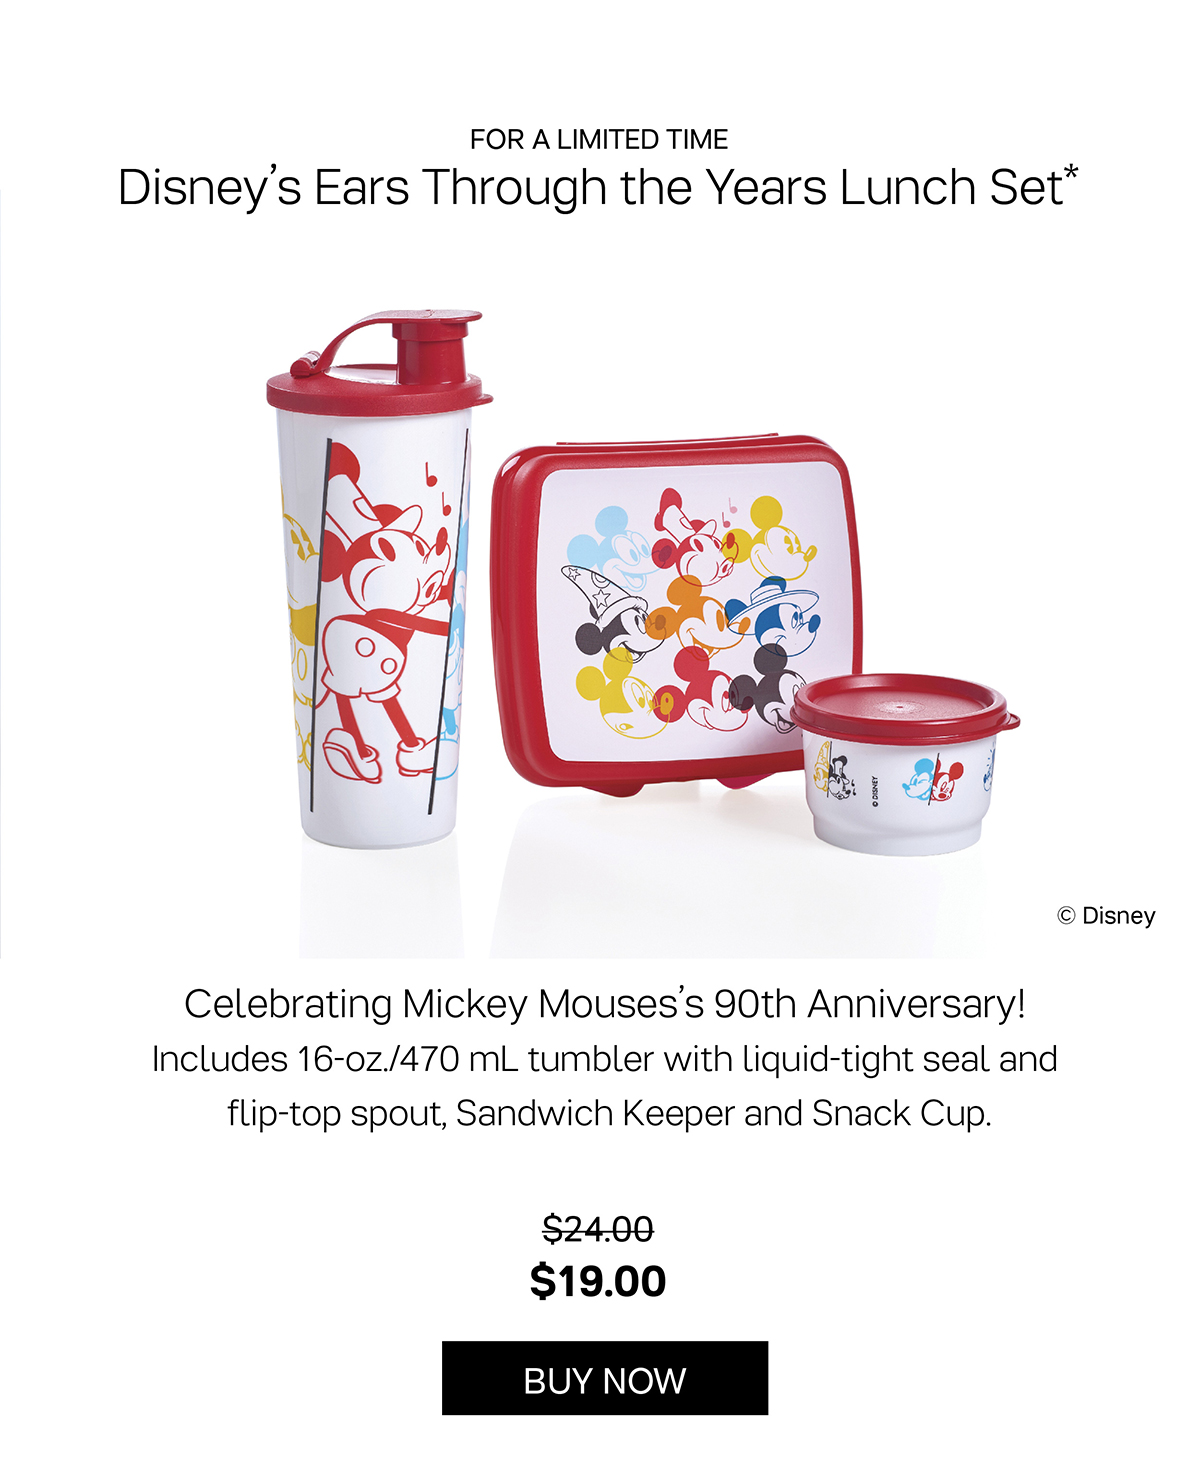 Disney's Ears Through the Years Lunch Set